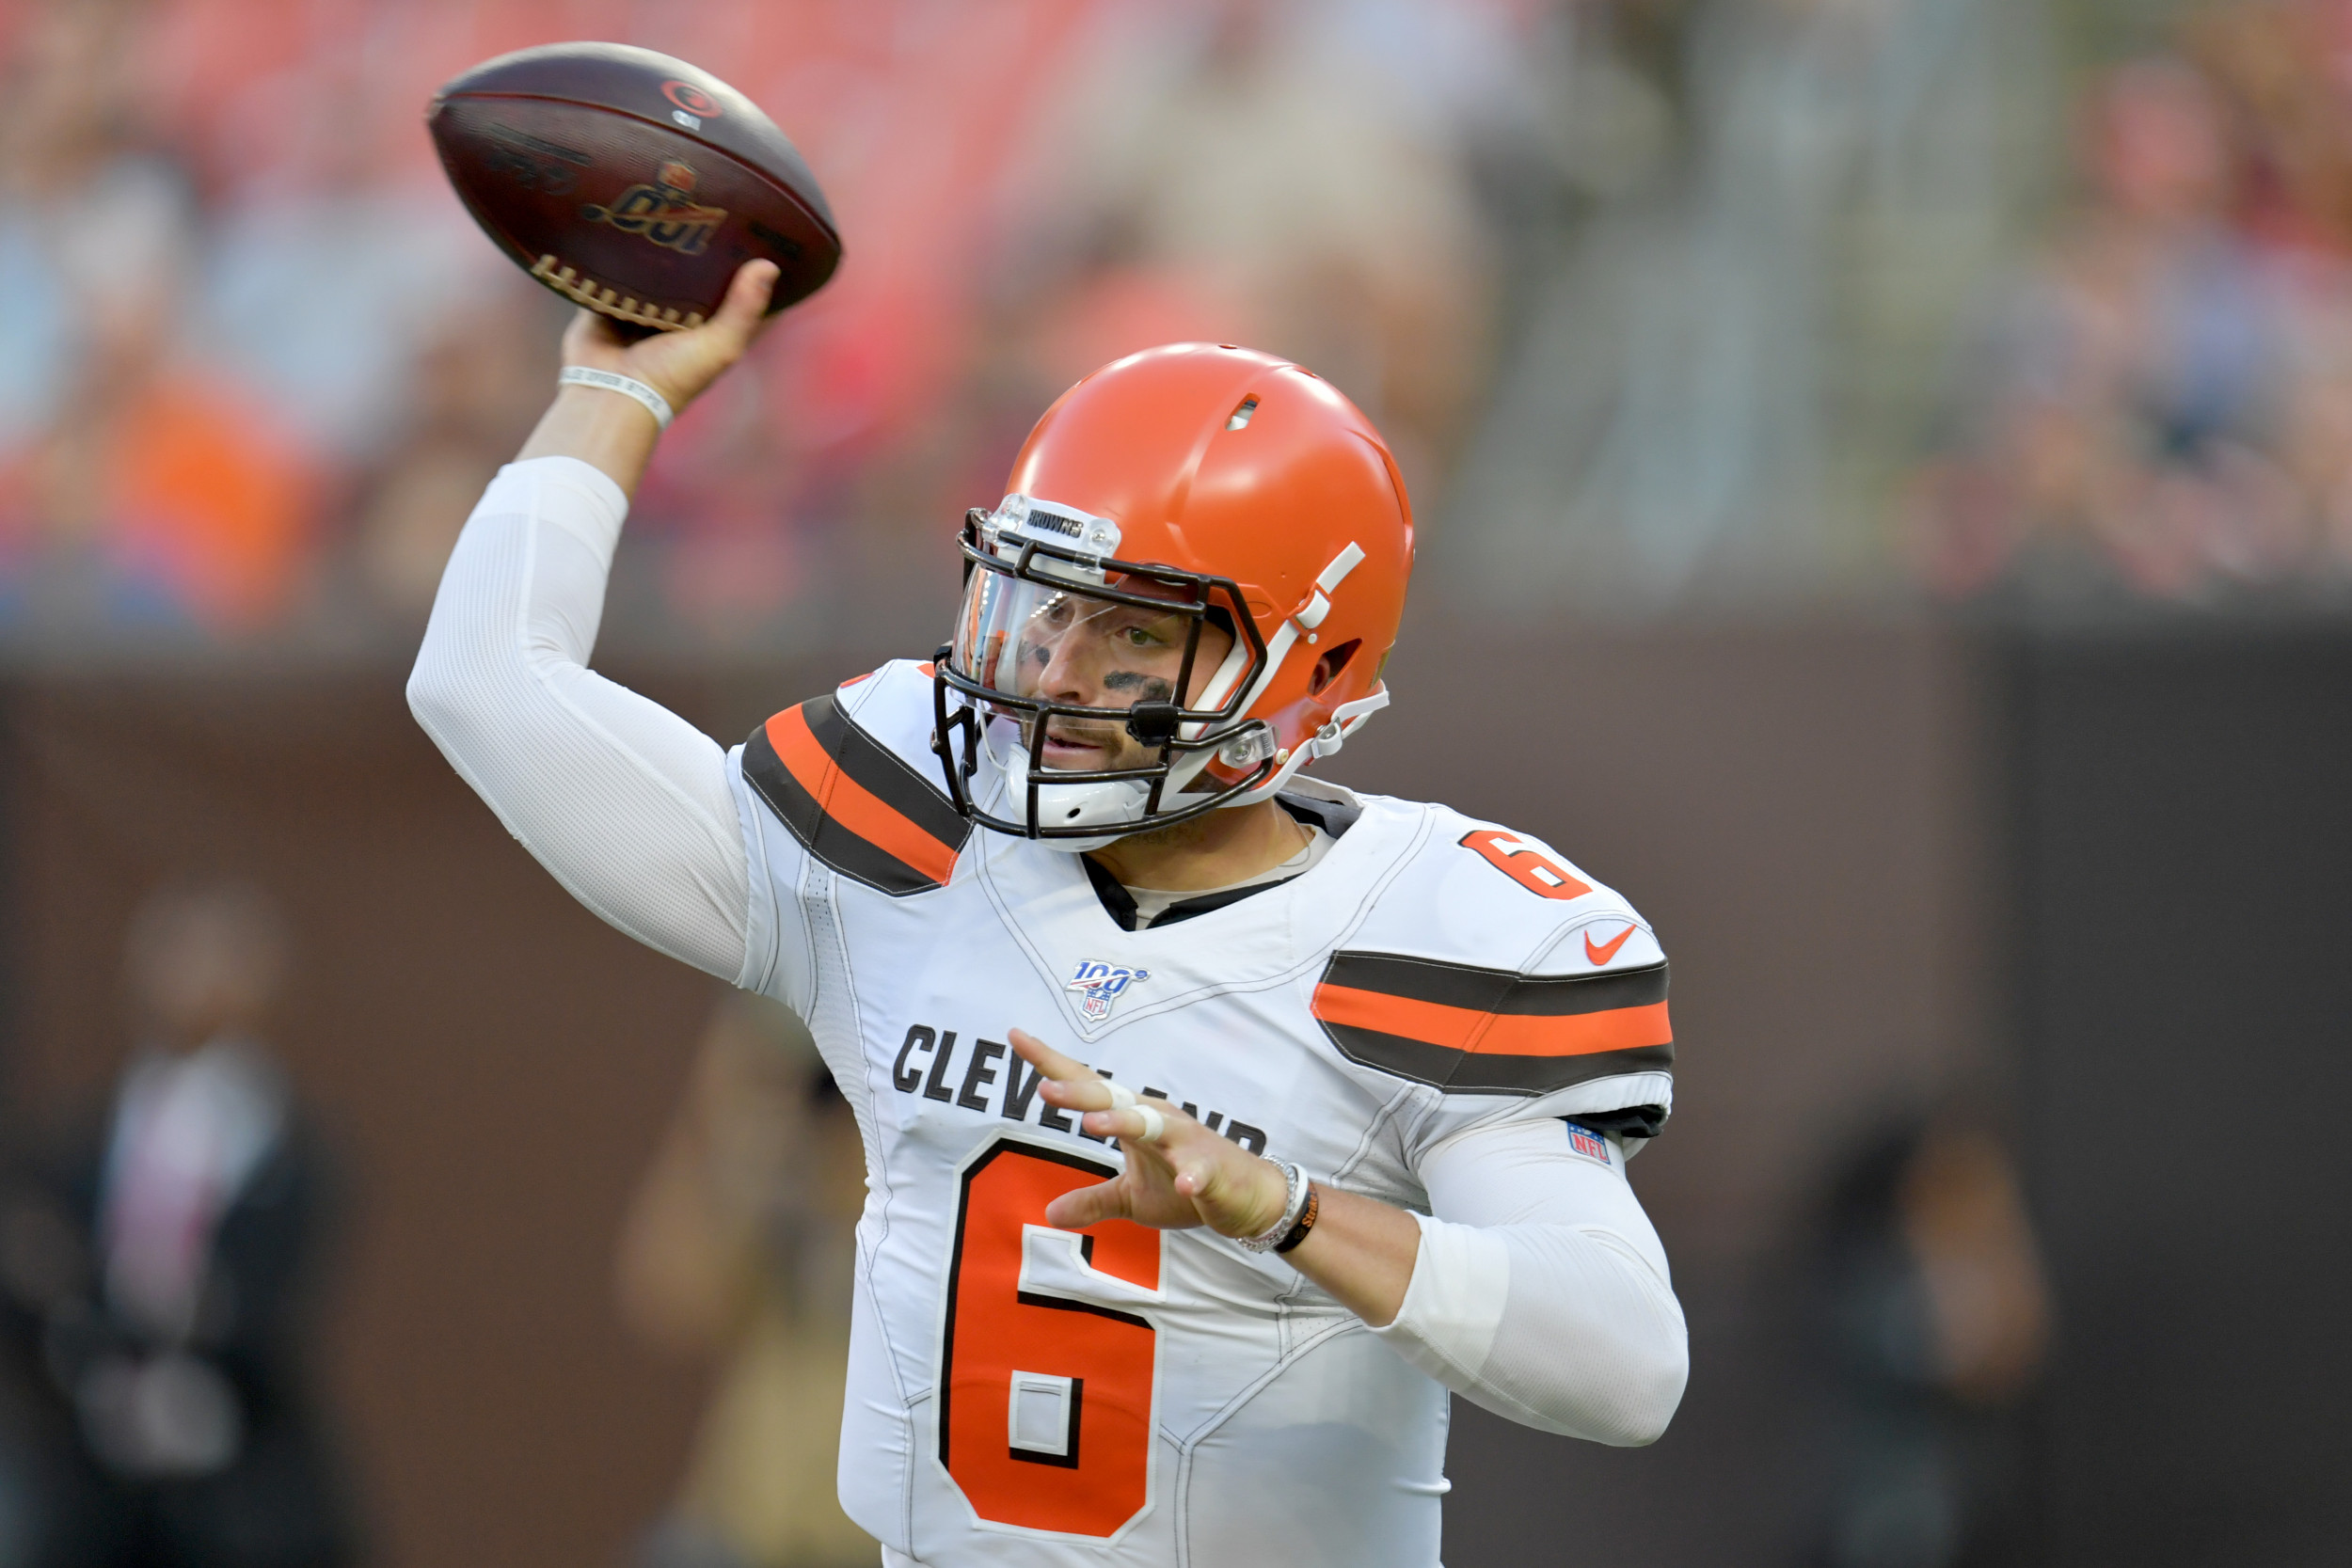 Cleveland Browns (NFL) Game Schedule, TV Listings, Videos ...